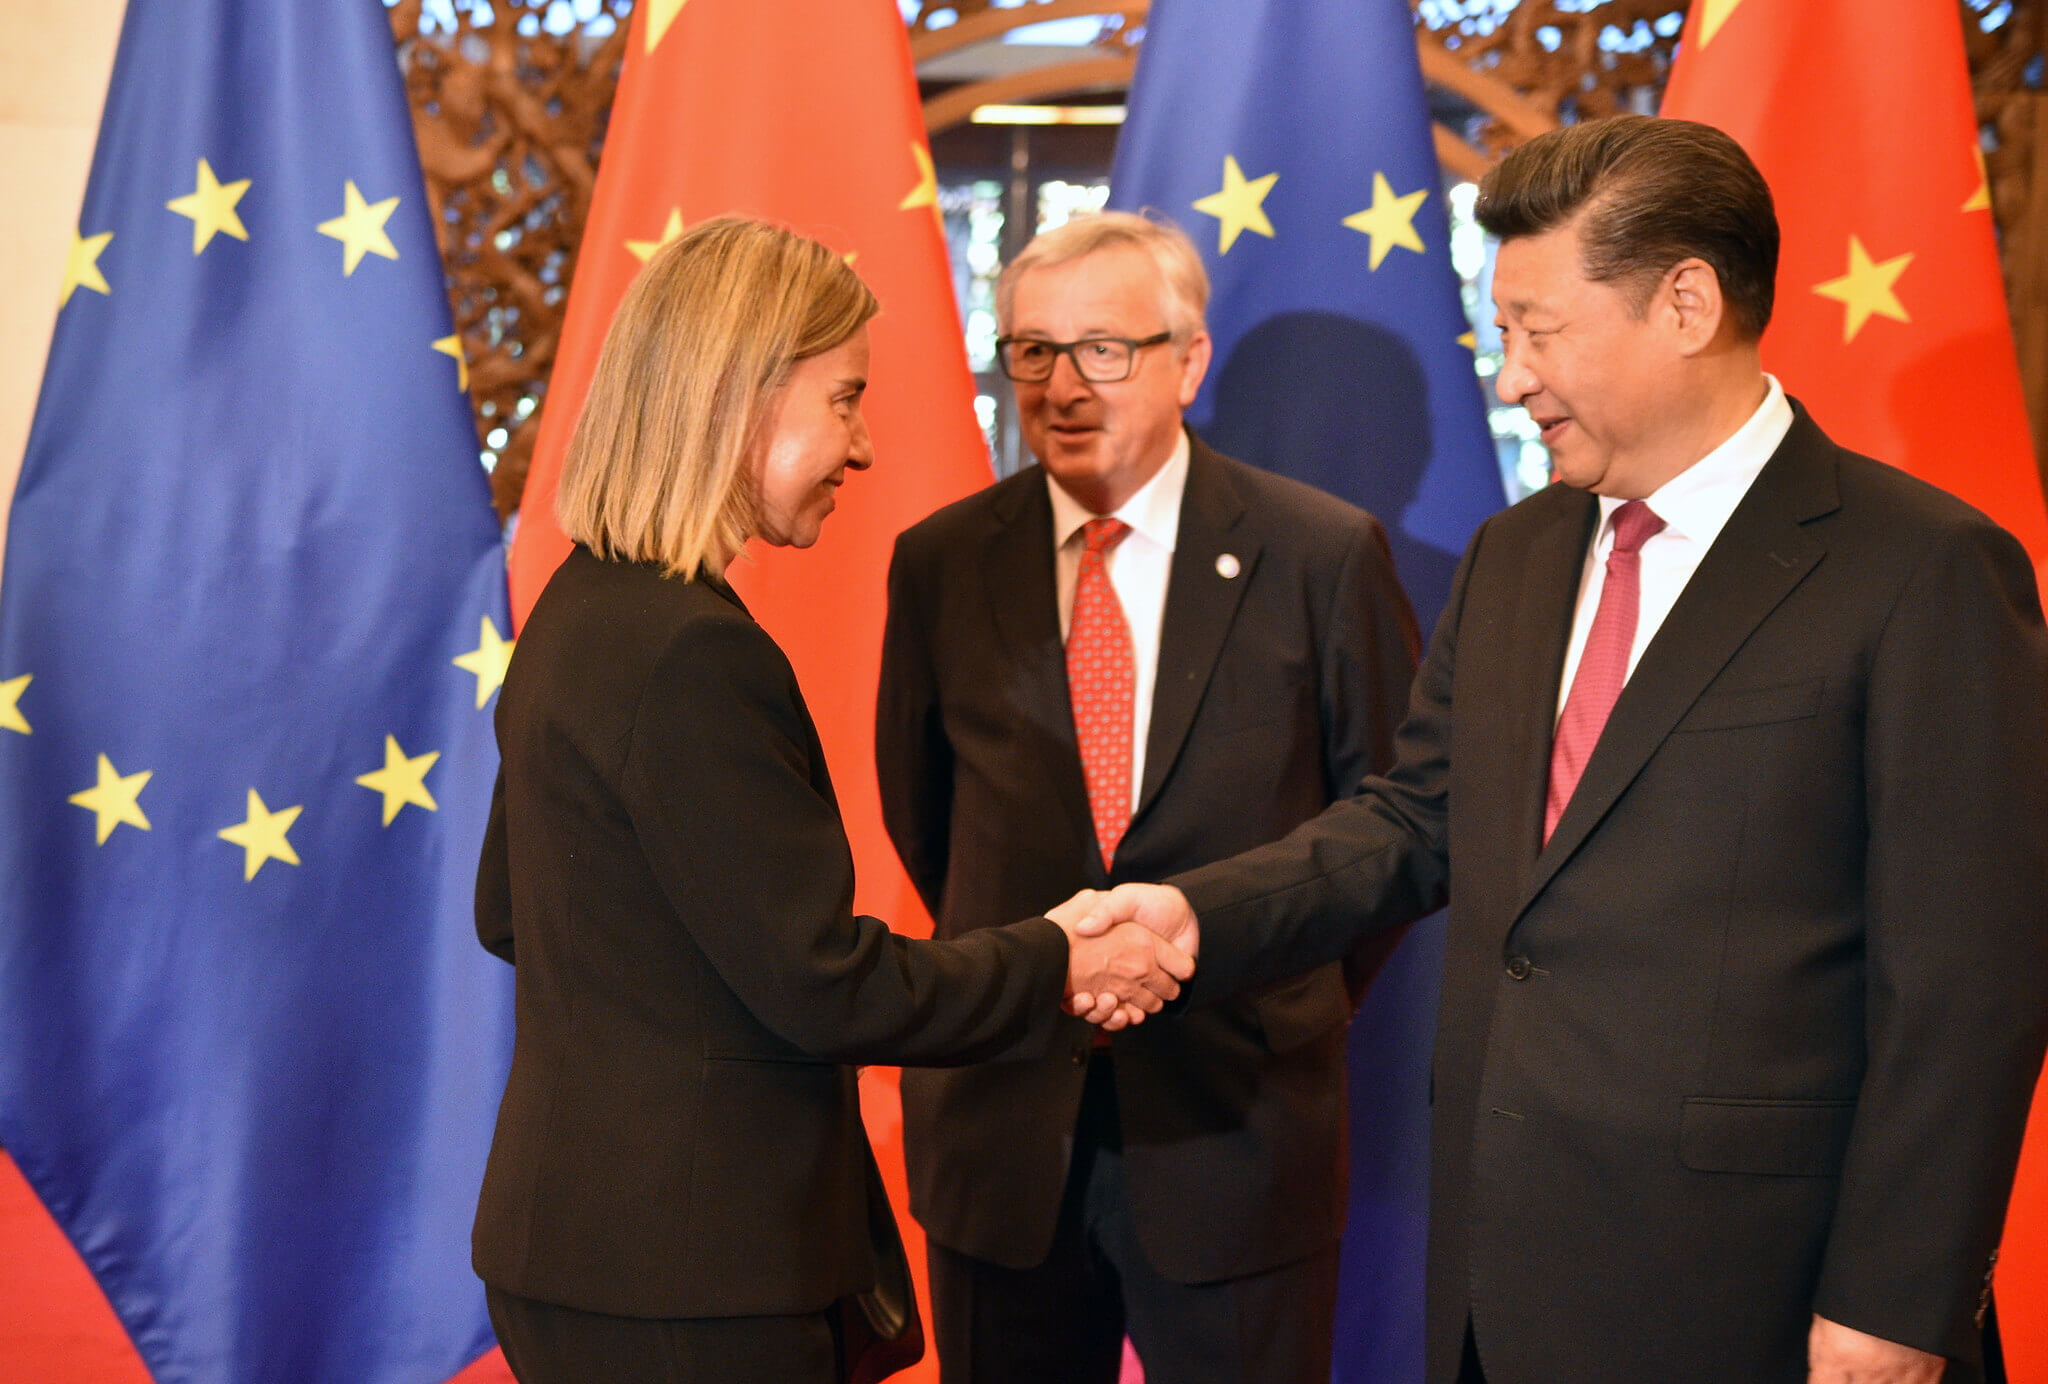 Xi Jinping meets with Federica Morgherini and Jean-Claude Juncker. ©Flickr/European External Activities Service